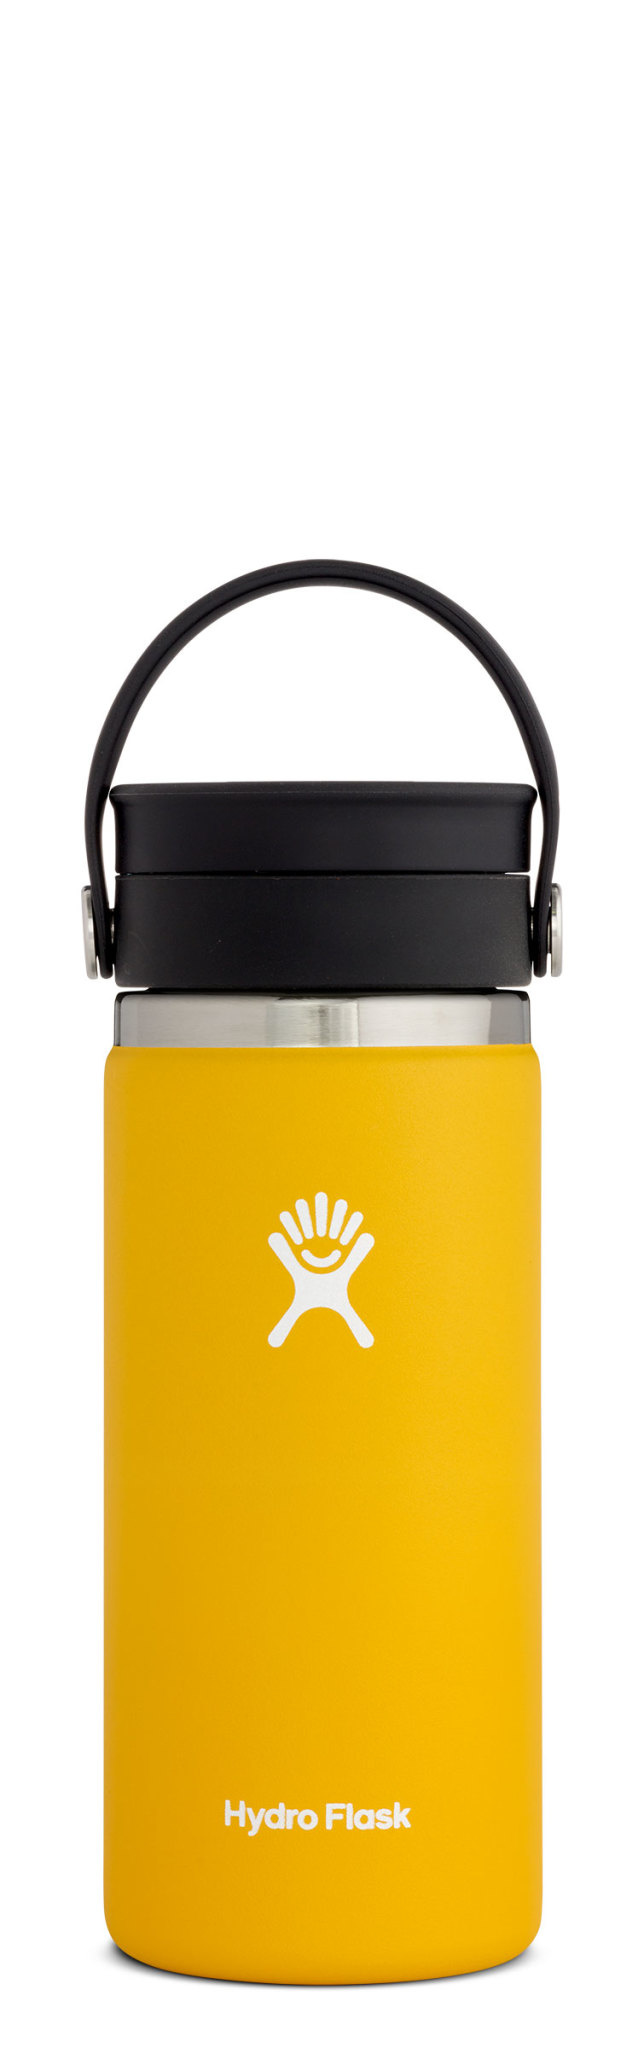 Hydro Flask 16oz Wide Mouth with Flex Sip Lid-6